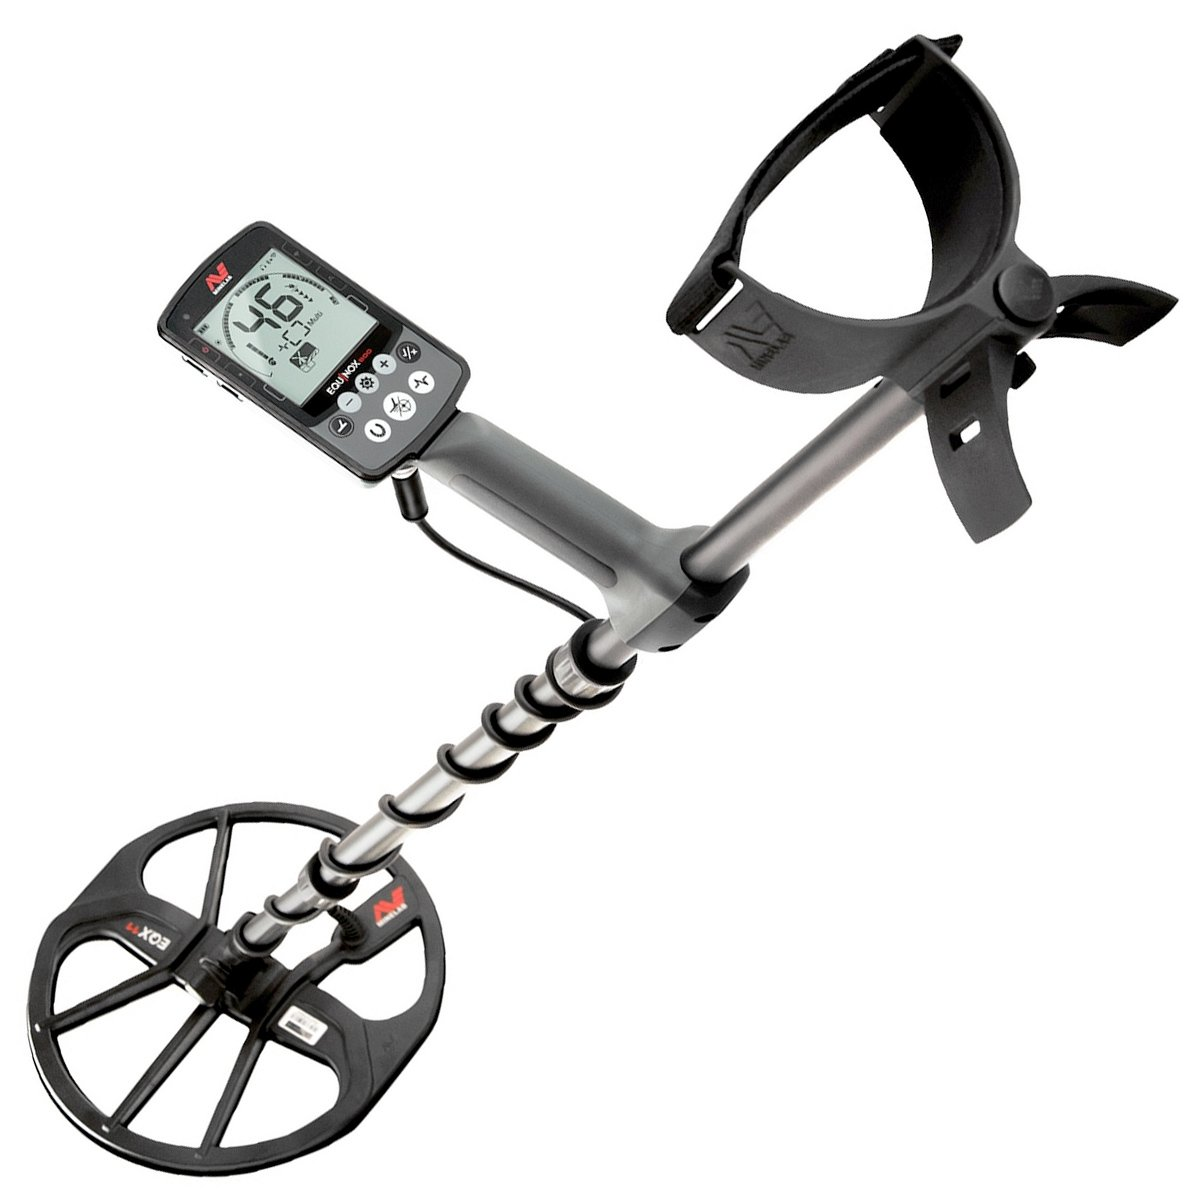 Amazon.com : Minelab EQUINOX 600 Multi-IQ Metal Detector with Pro-Find 35 Pinpointer : Garden & Outdoor